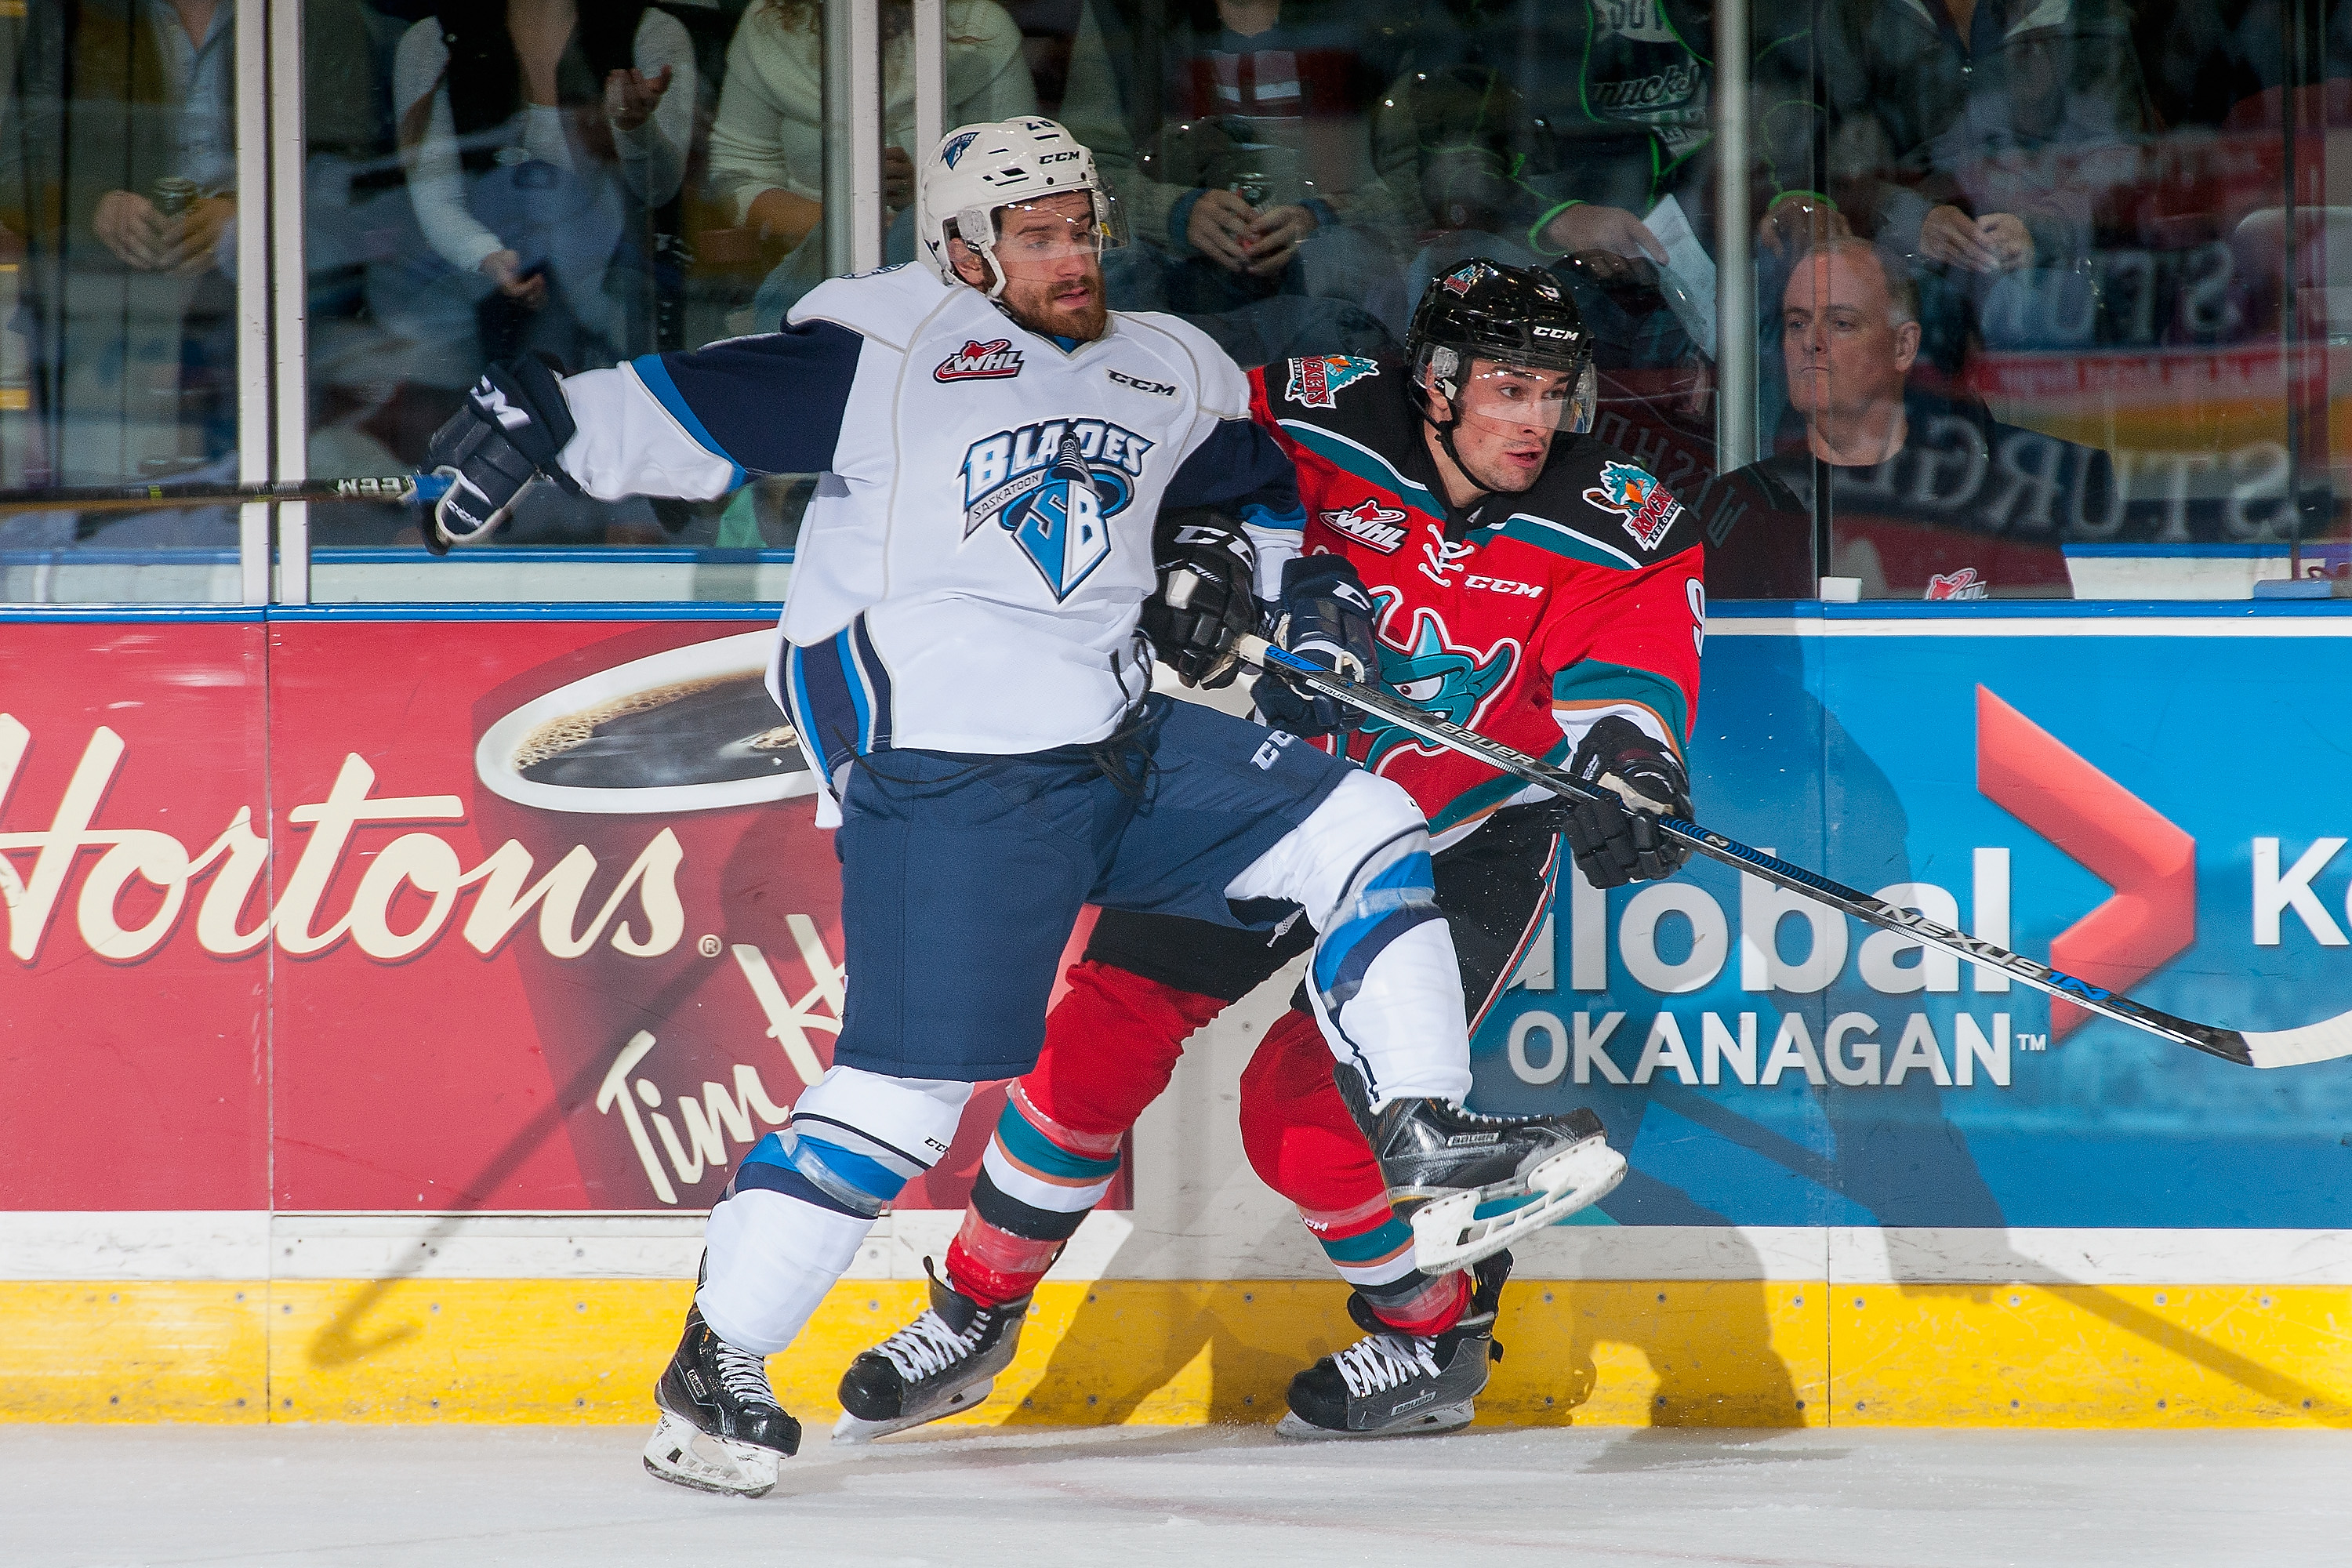 Tanner Wishnowski (right) was traded to Spokane from Kelowna and made an immediate impact.